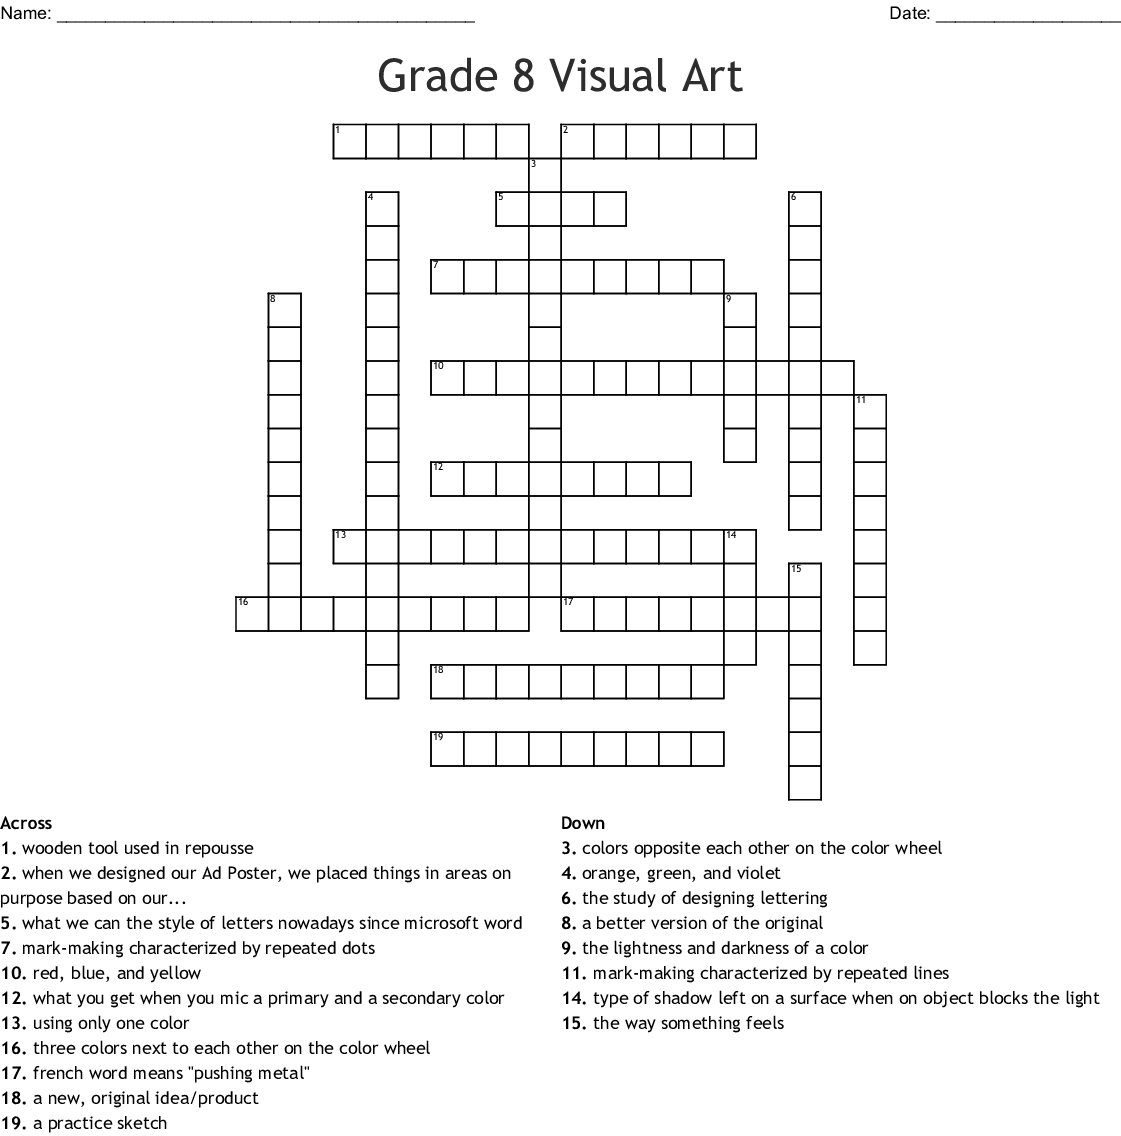 Color Theory Principles Amp Elements Of Art Crossword